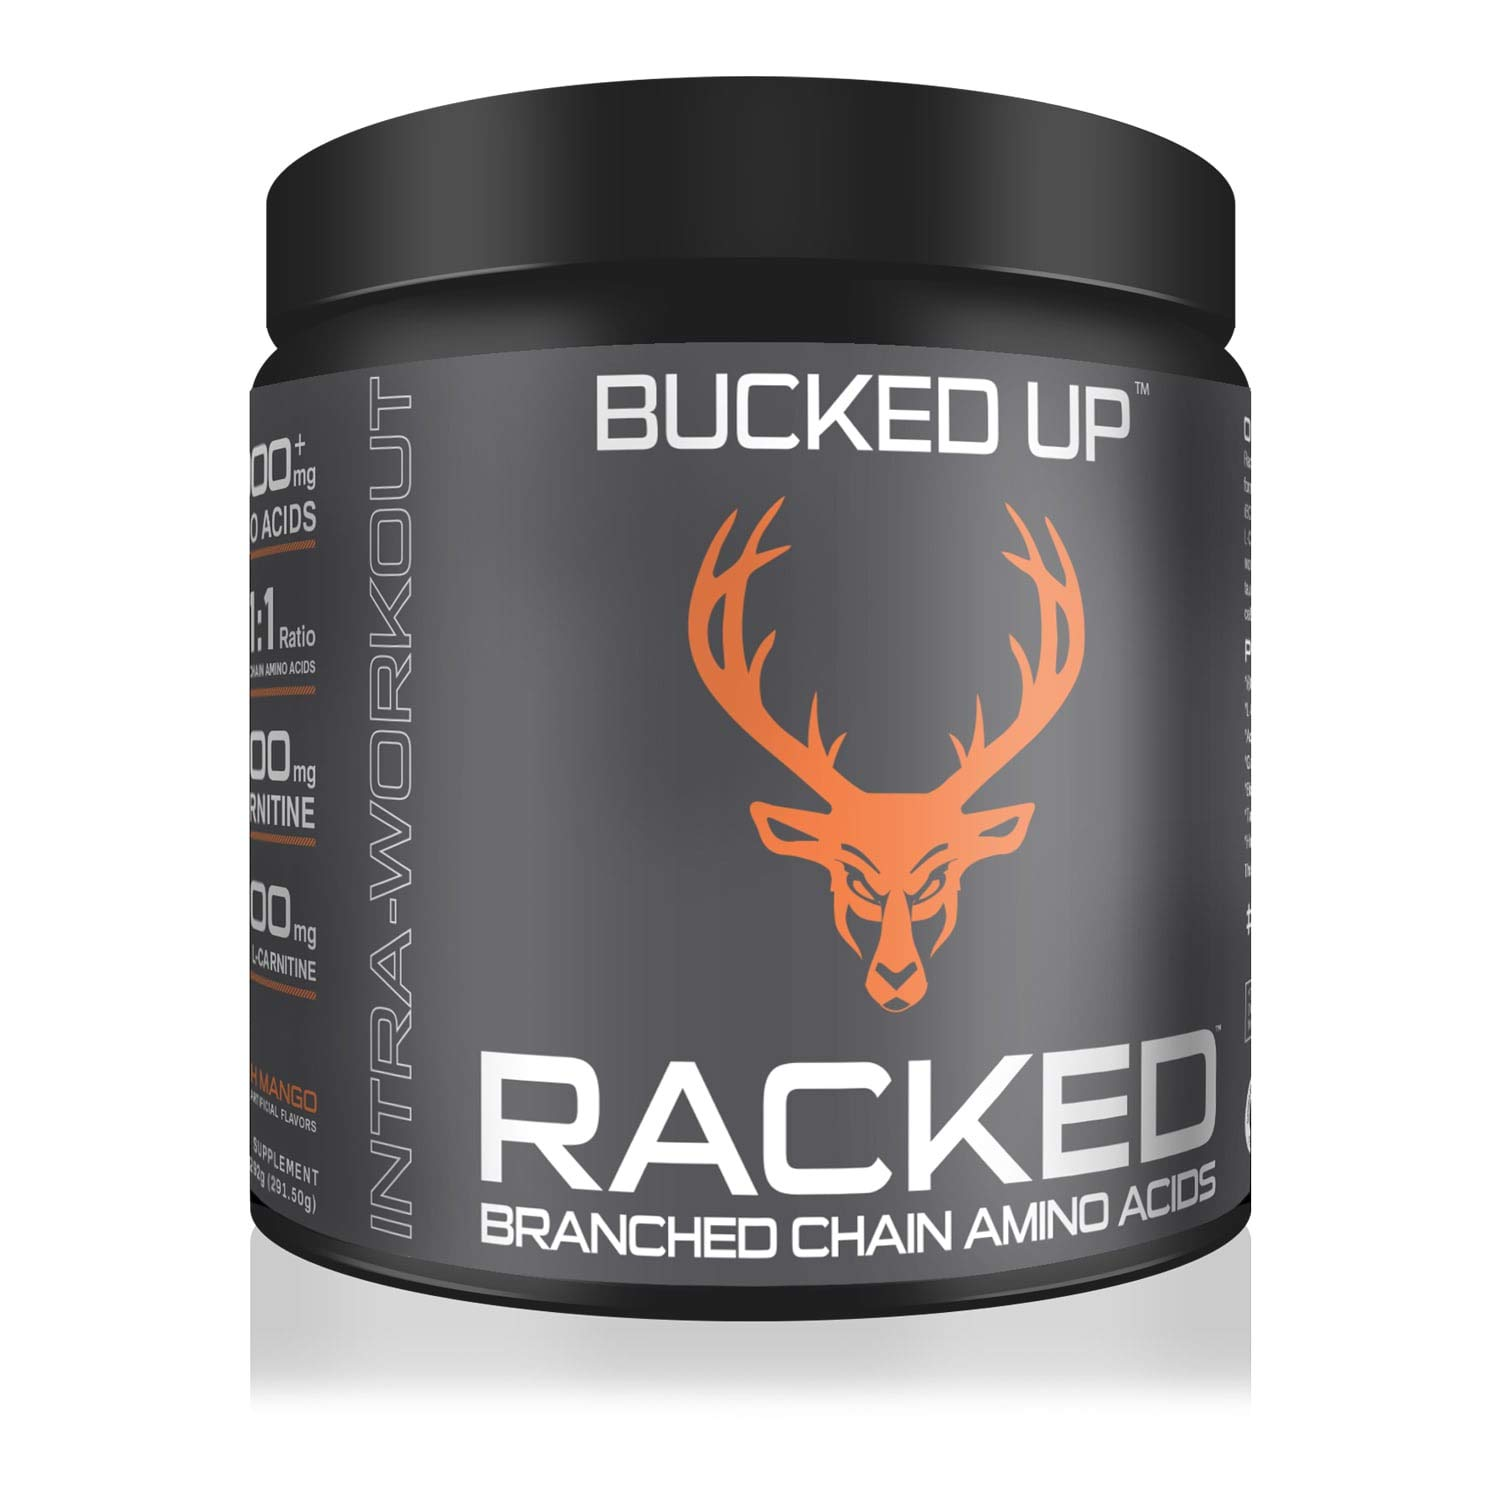 RACKEDTM Branch Chained Amino Acids - Peach Mango Flavor -''BCAAs That You Can Feel!'' Powder, 30 Servings